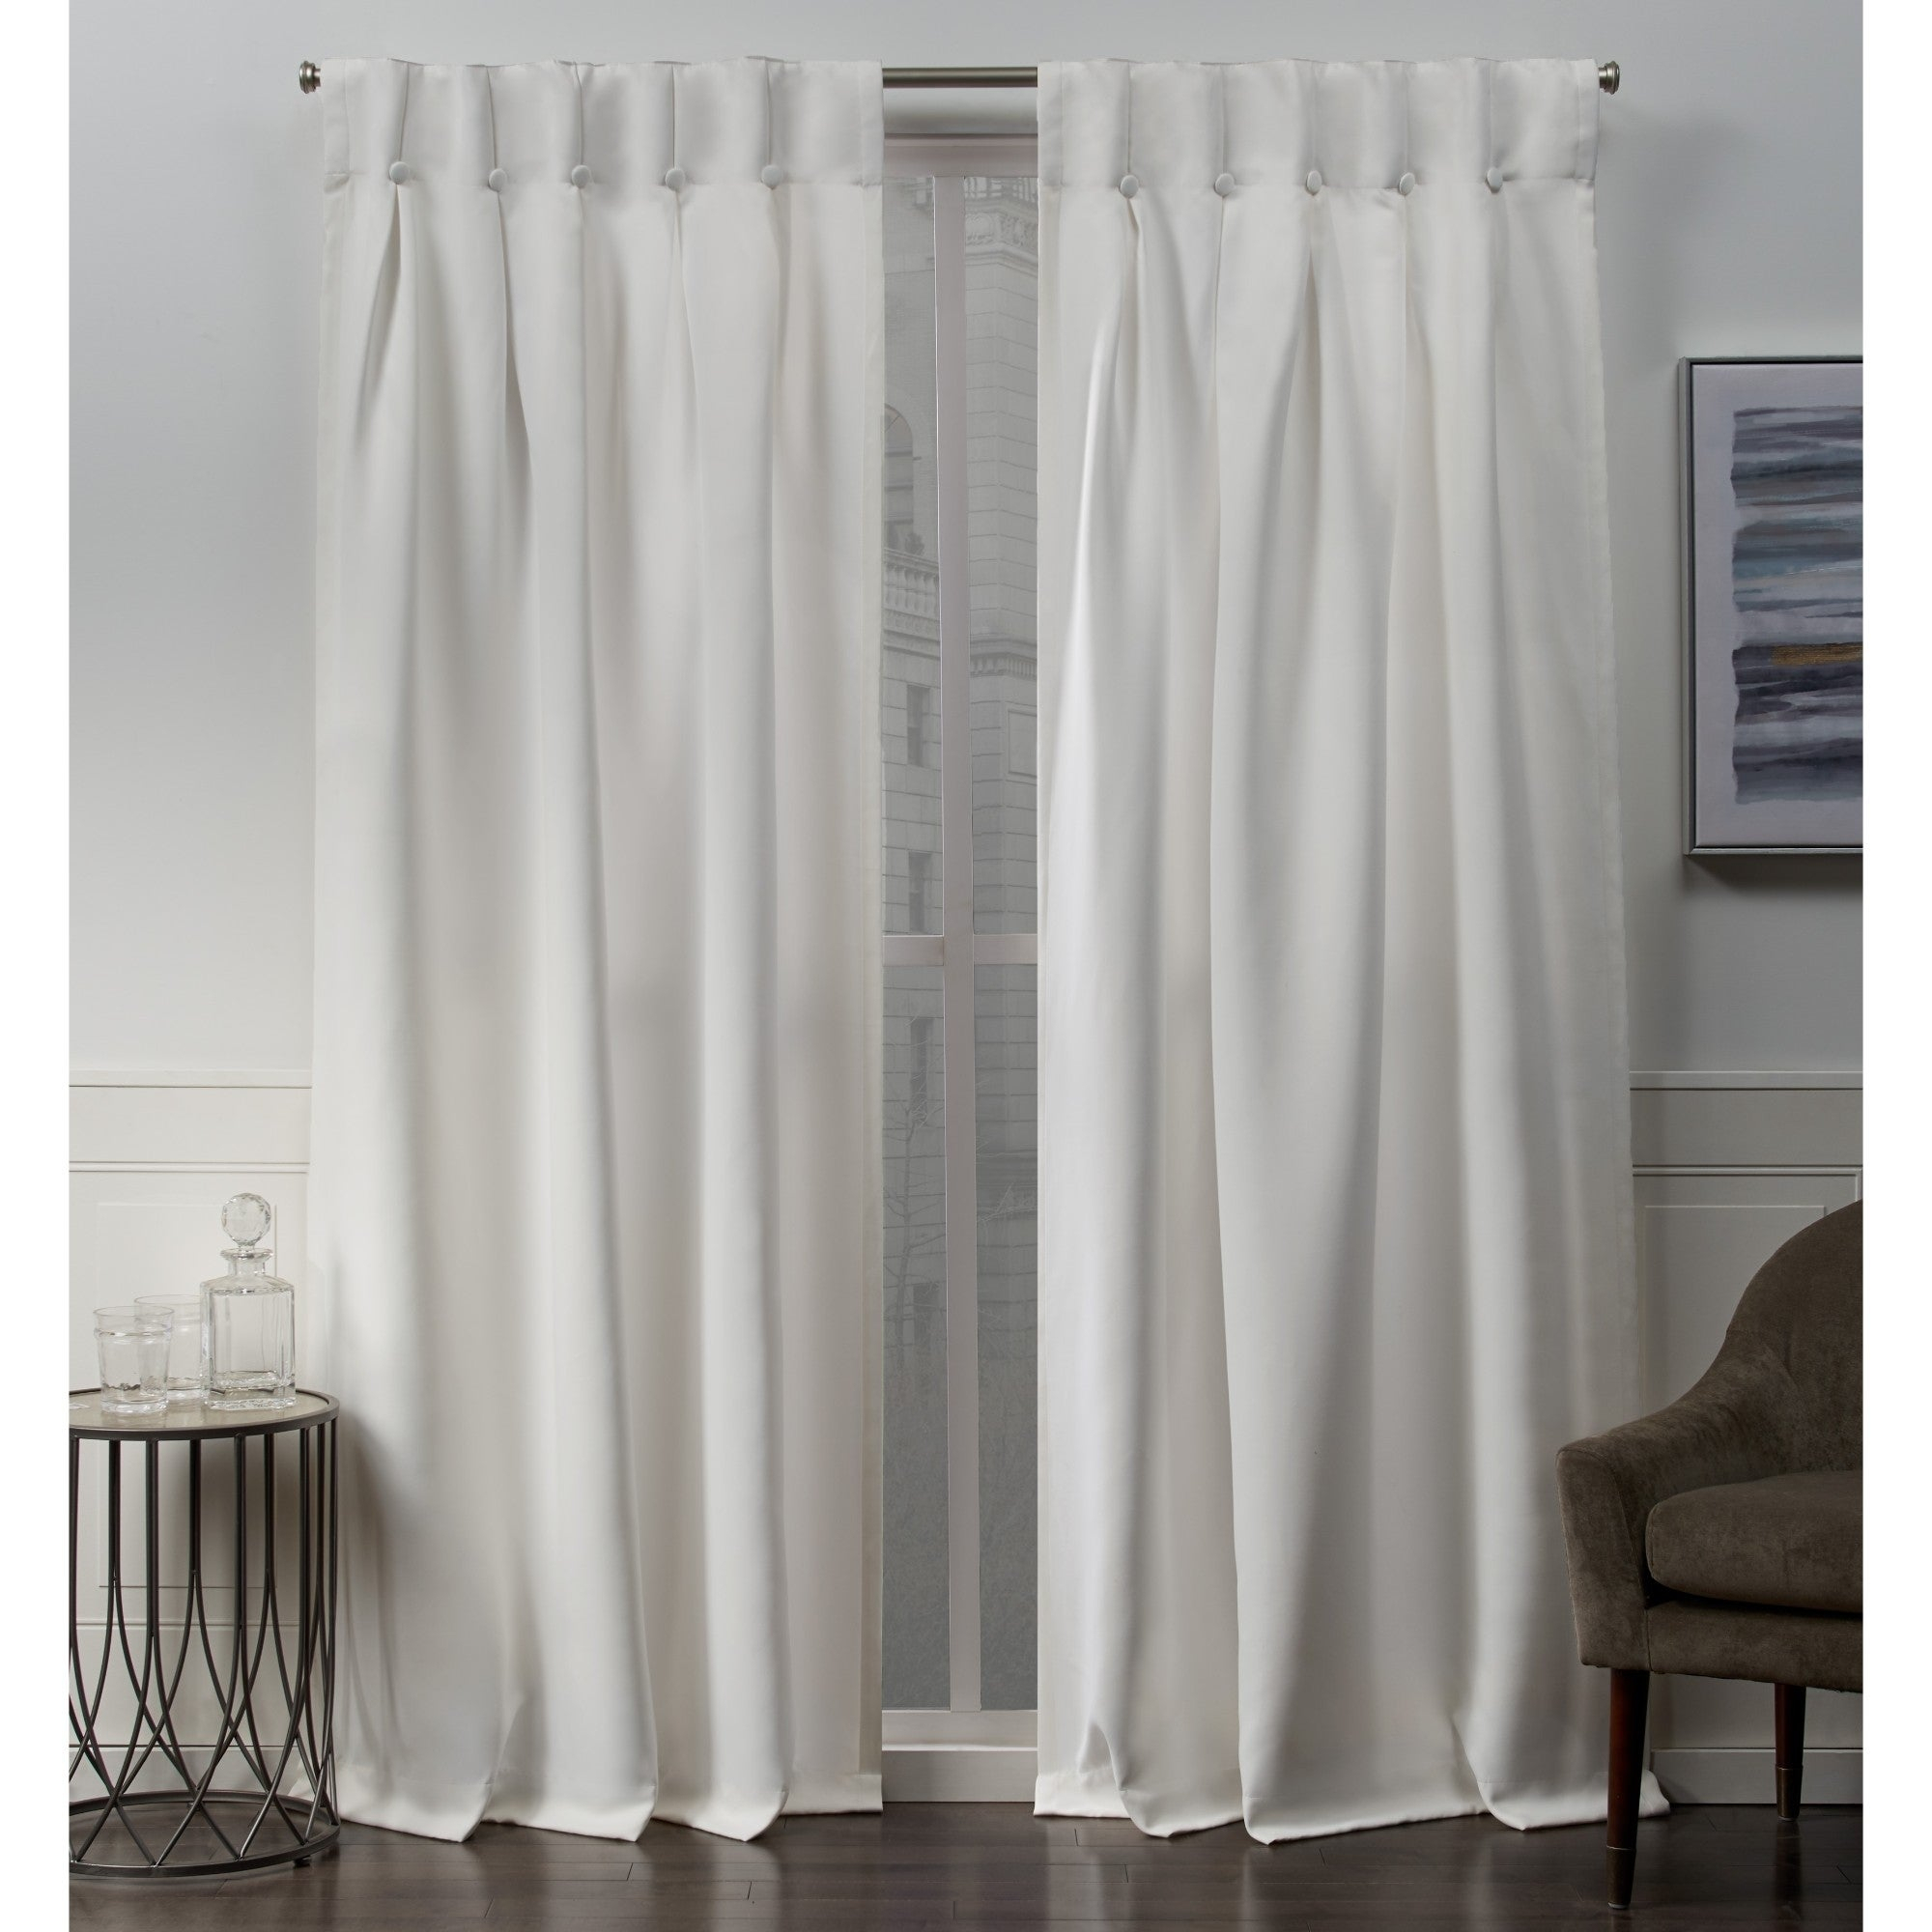 Ati Home Sateen Woven Blackout Button Top Window Curtain Panel Pair Pertaining To Sateen Woven Blackout Curtain Panel Pairs With Pinch Pleat Top (View 6 of 20)